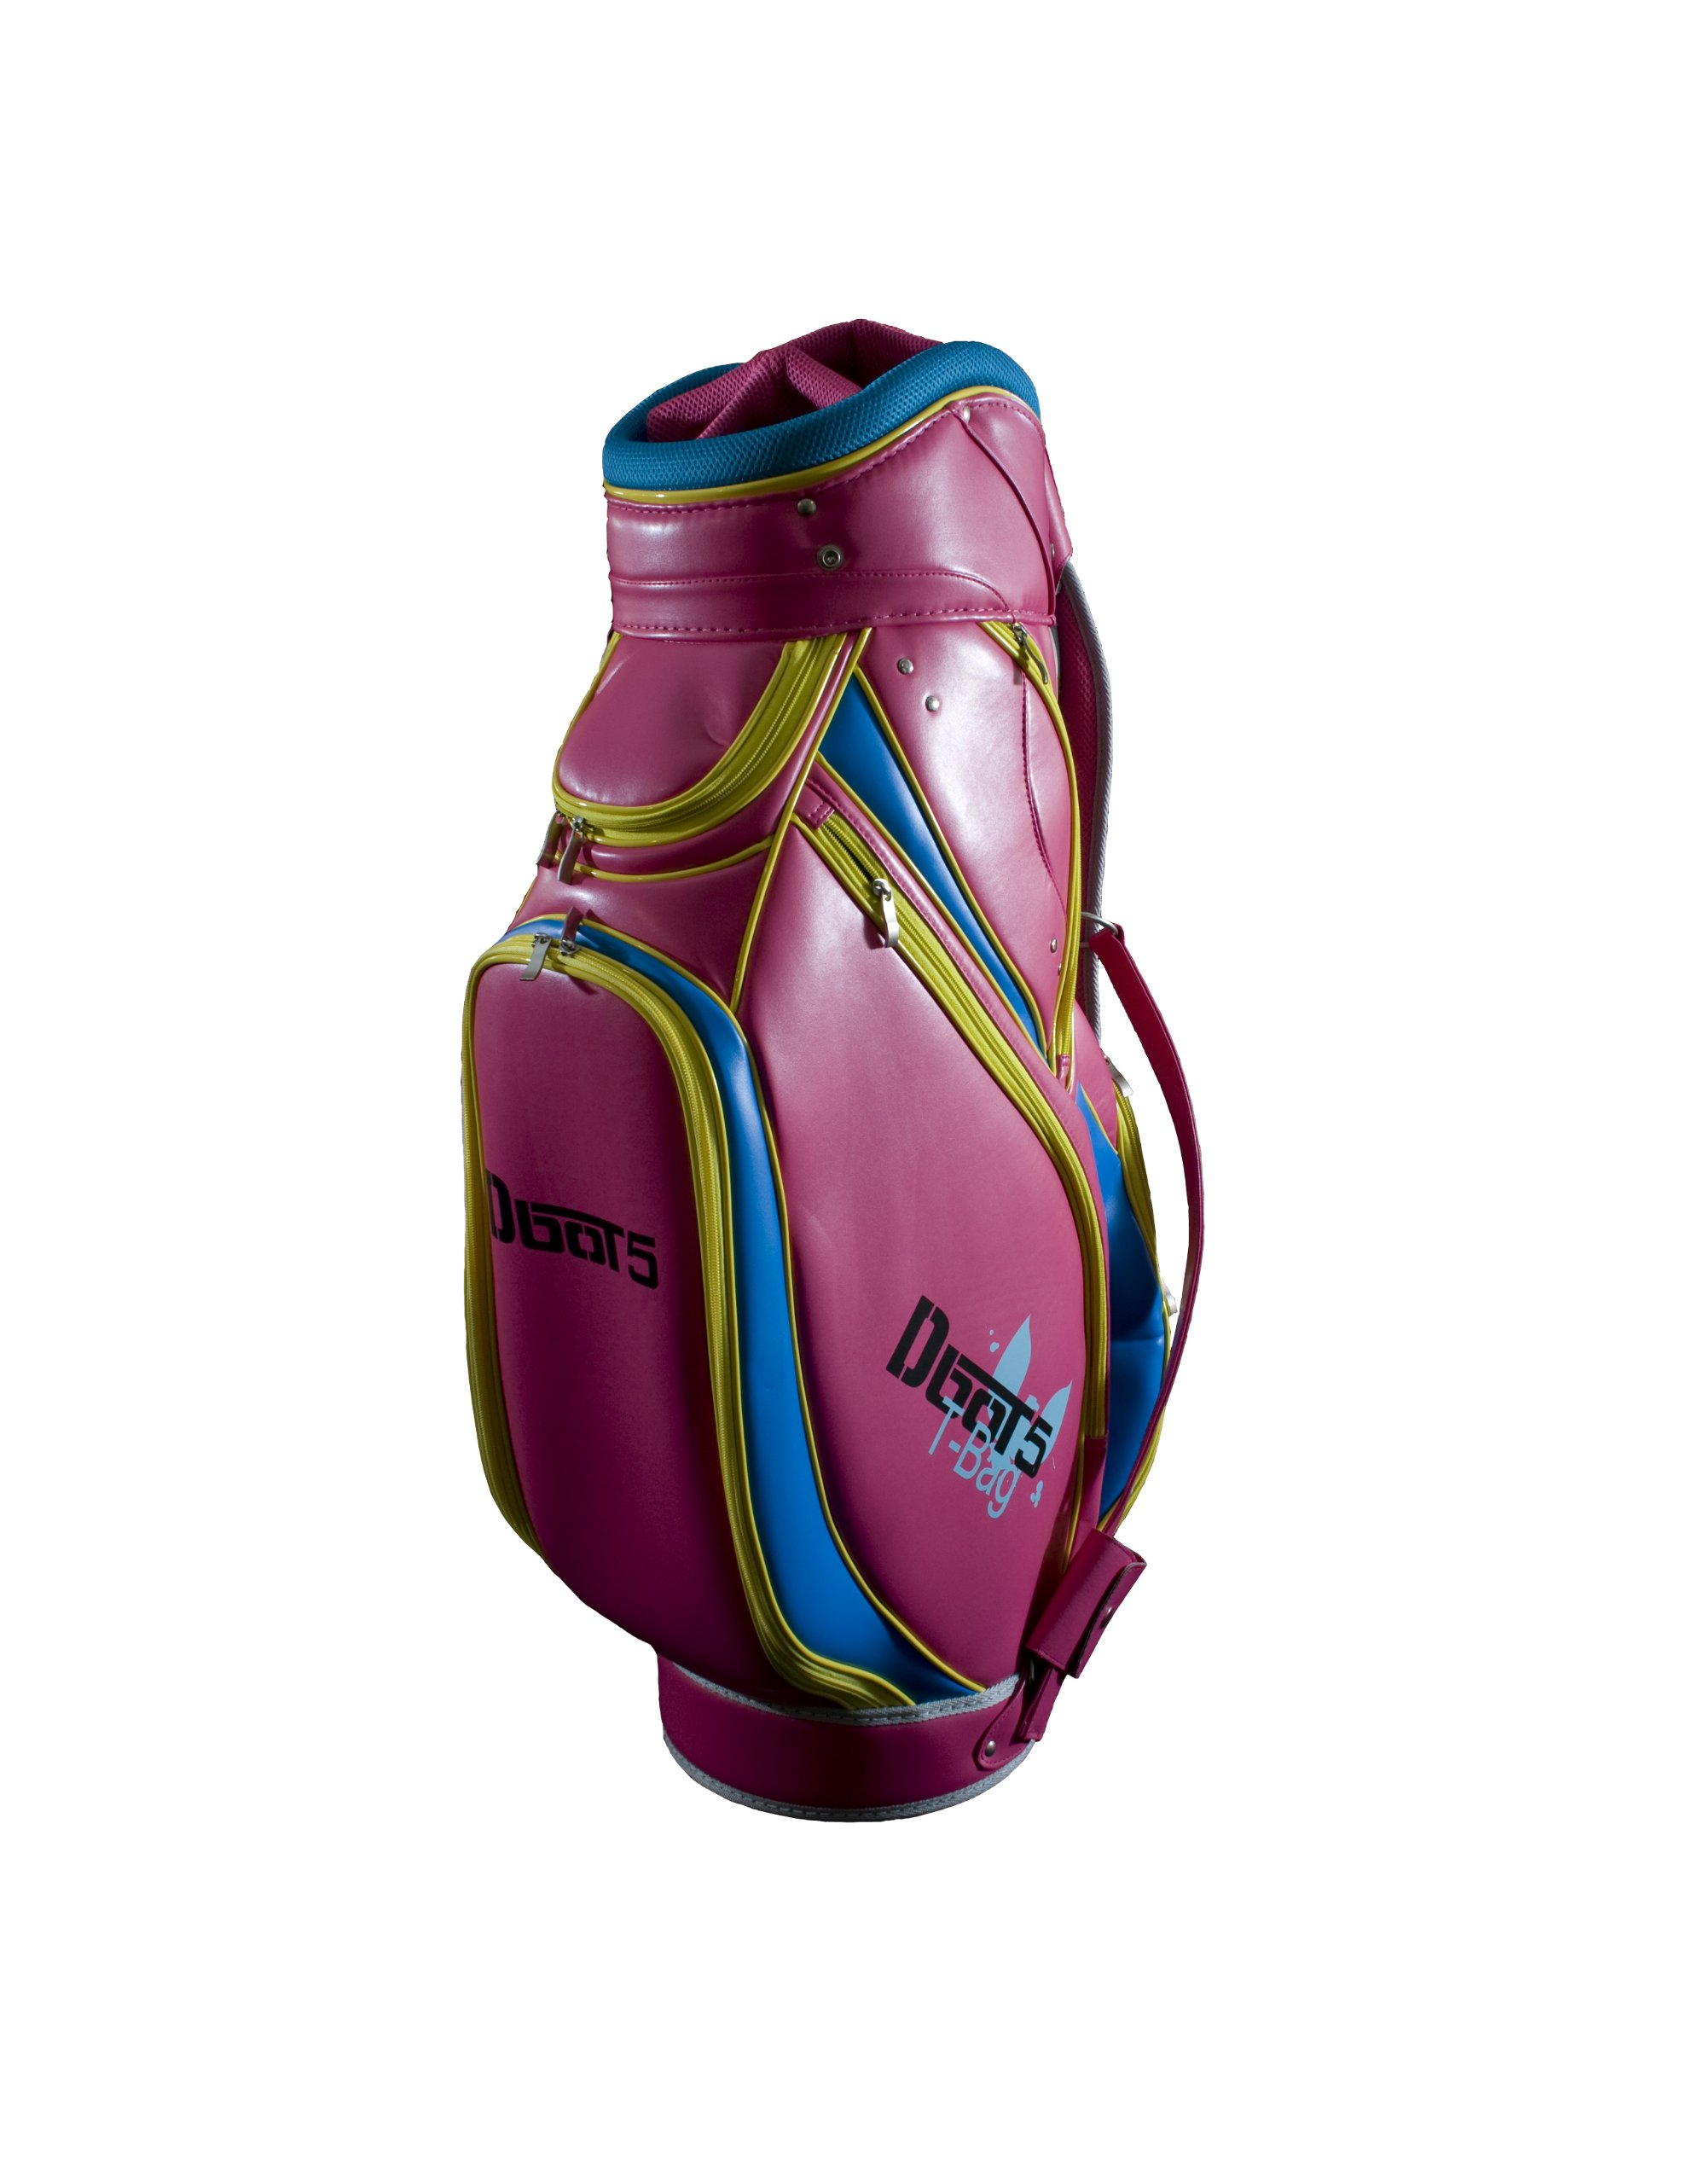 Dbot5 Hail Mary Golf Stand Bag, Pink by Dbot5 (Image #2)